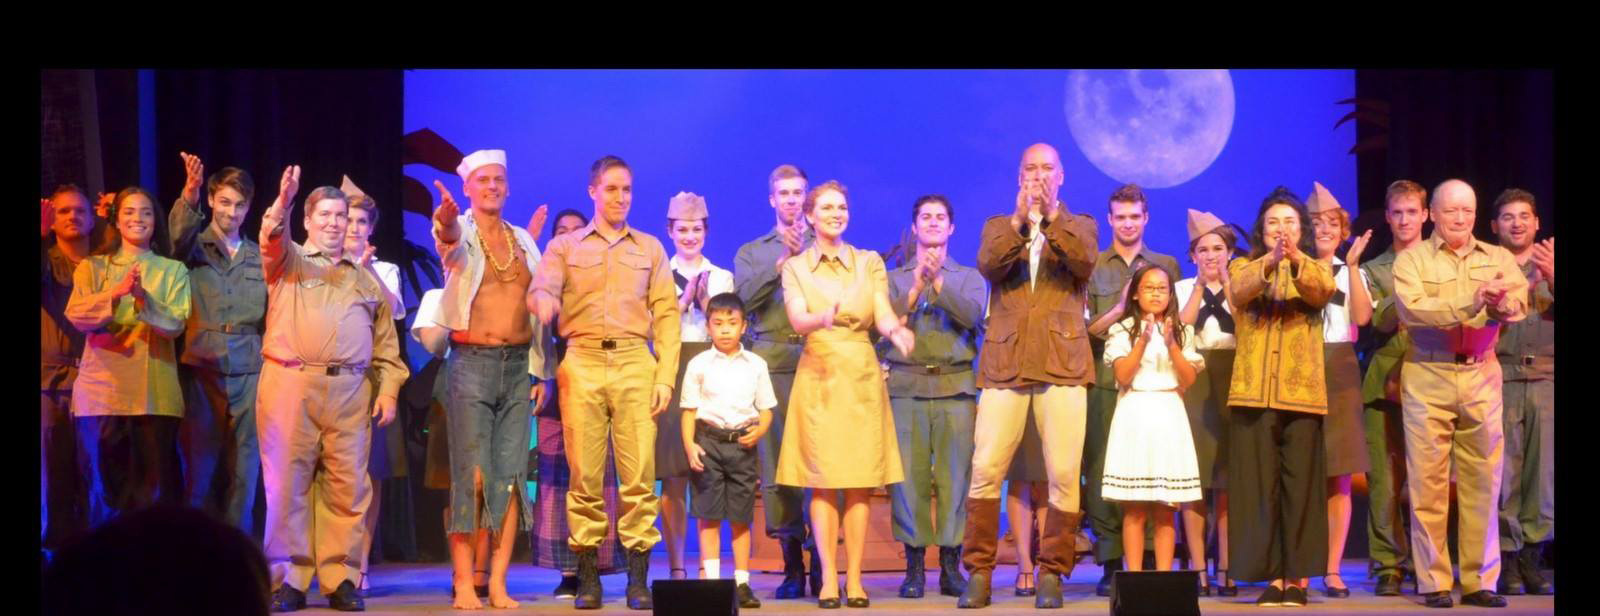 The cast of SOUTH PACFIC at the Ivoryton Playhouse, July 2015